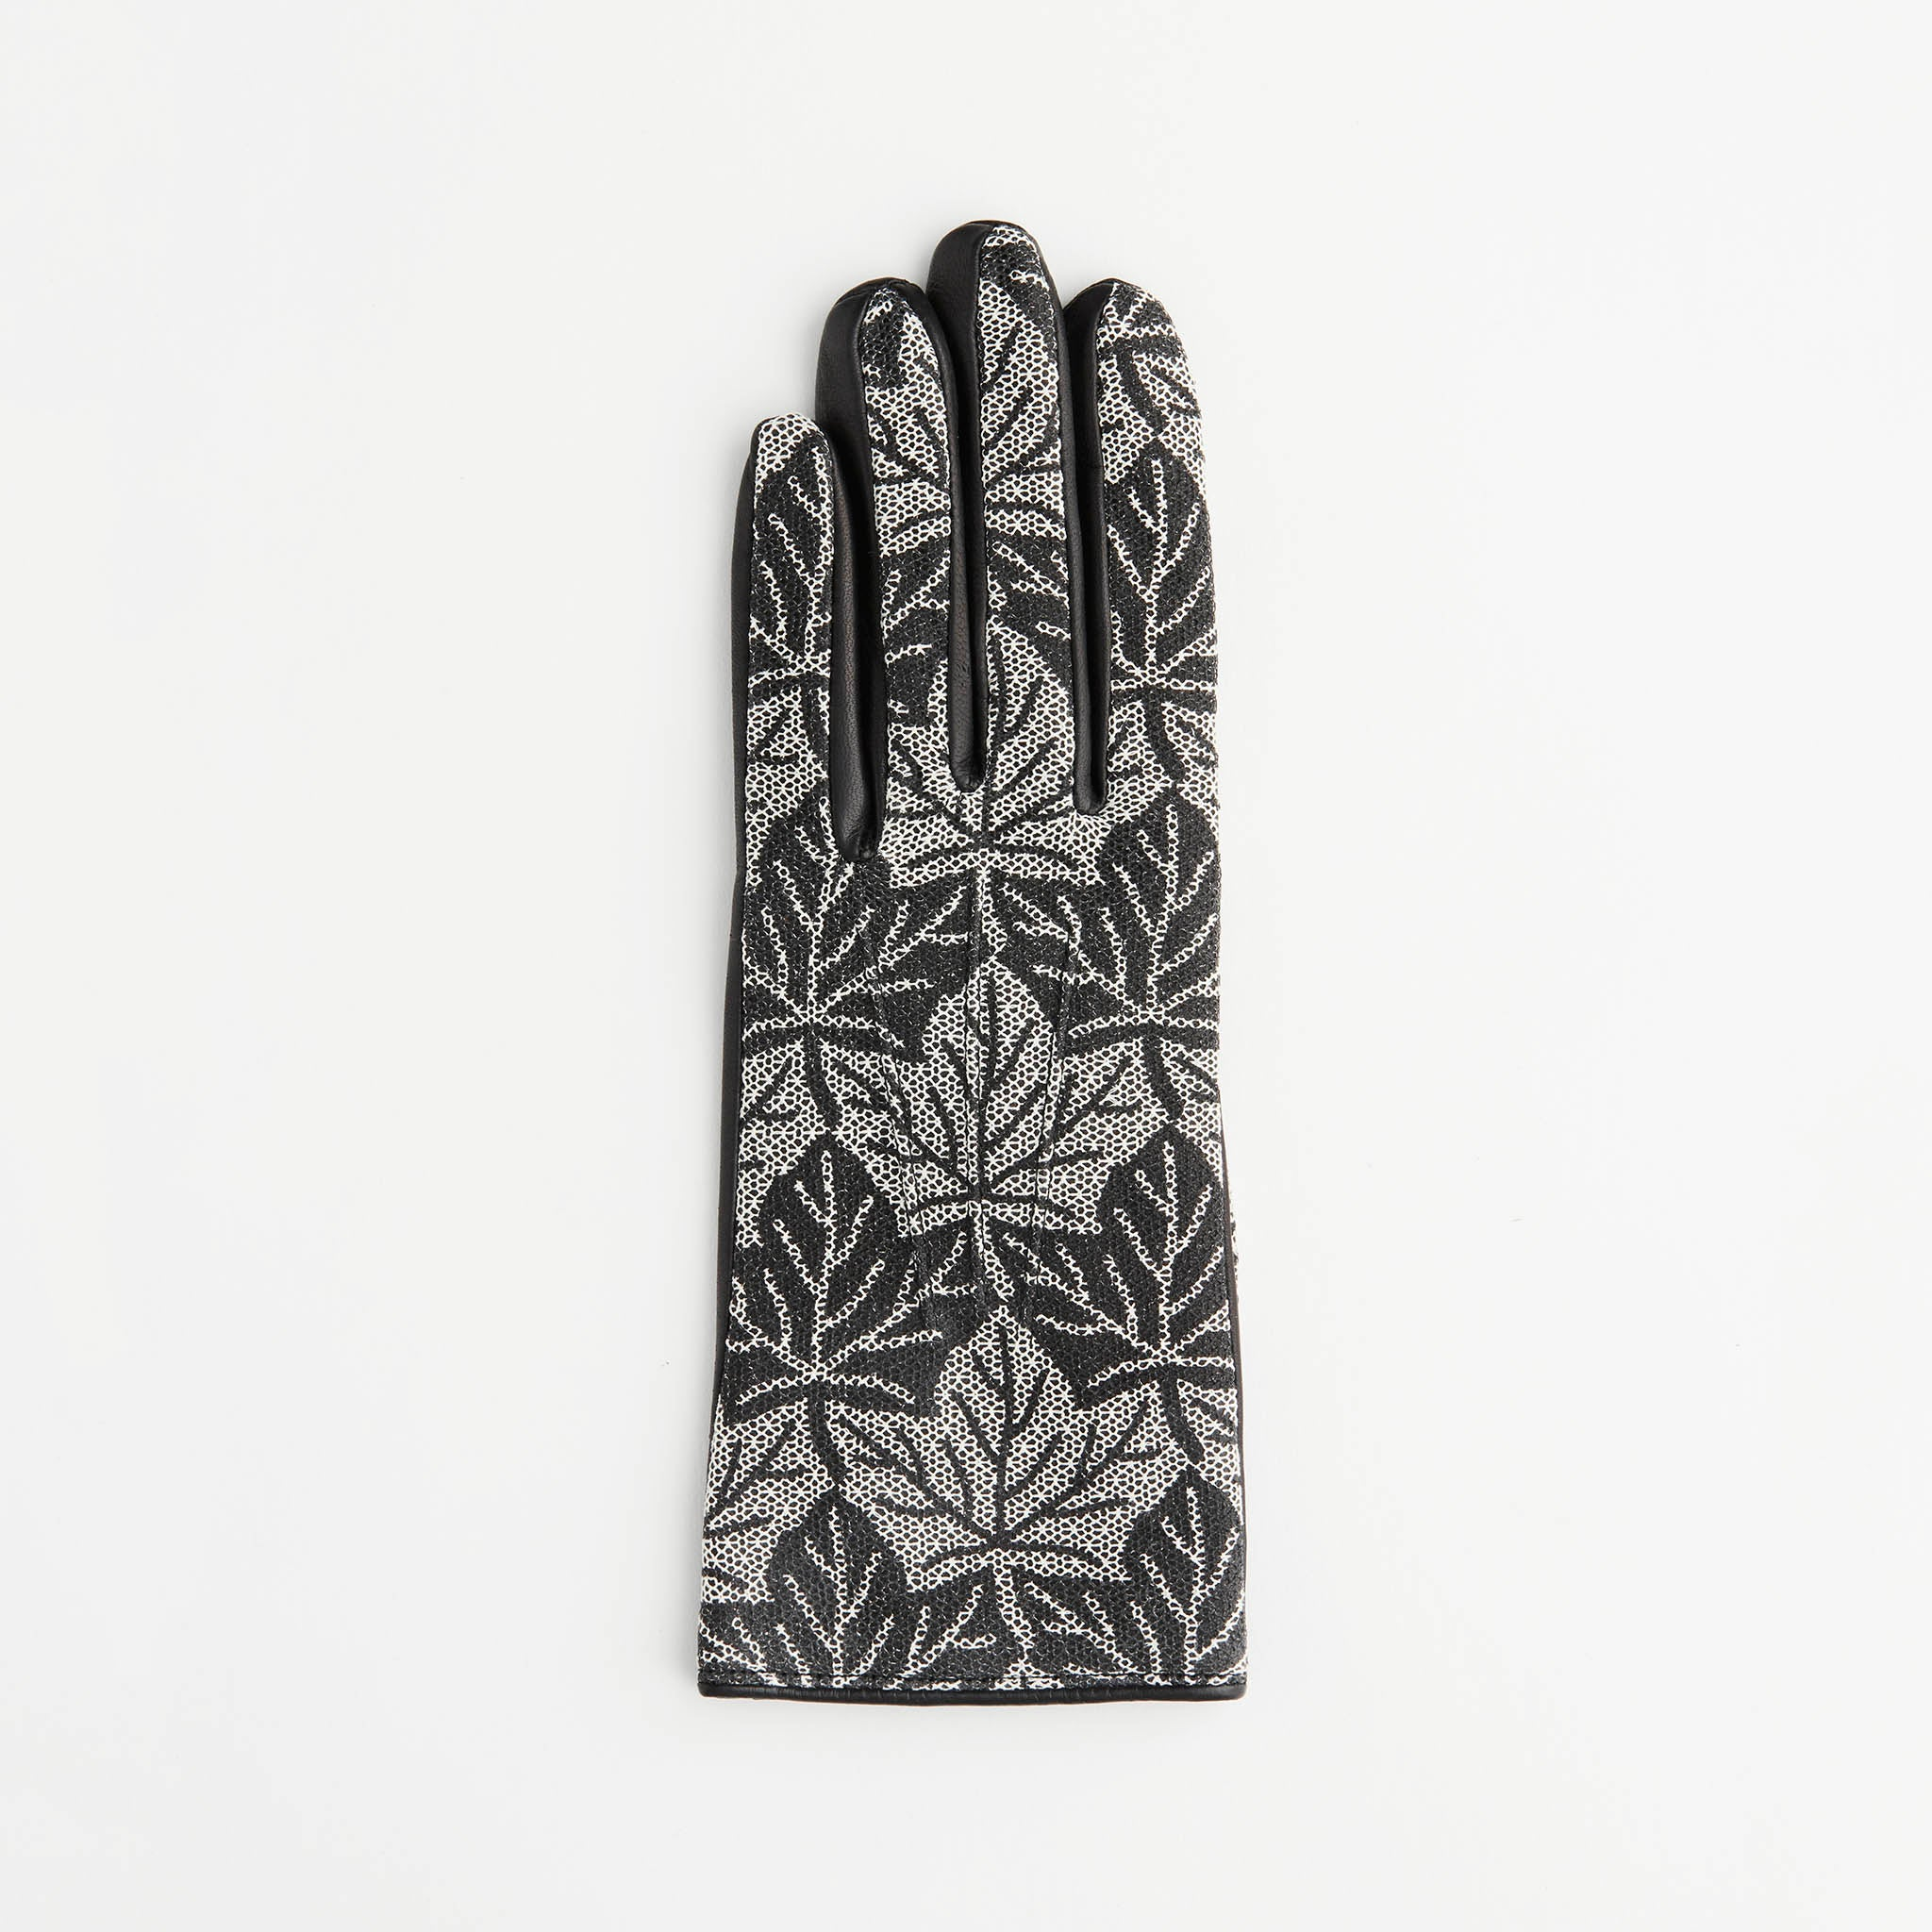 Women's Leather Gloves with Printed Lace Overlay